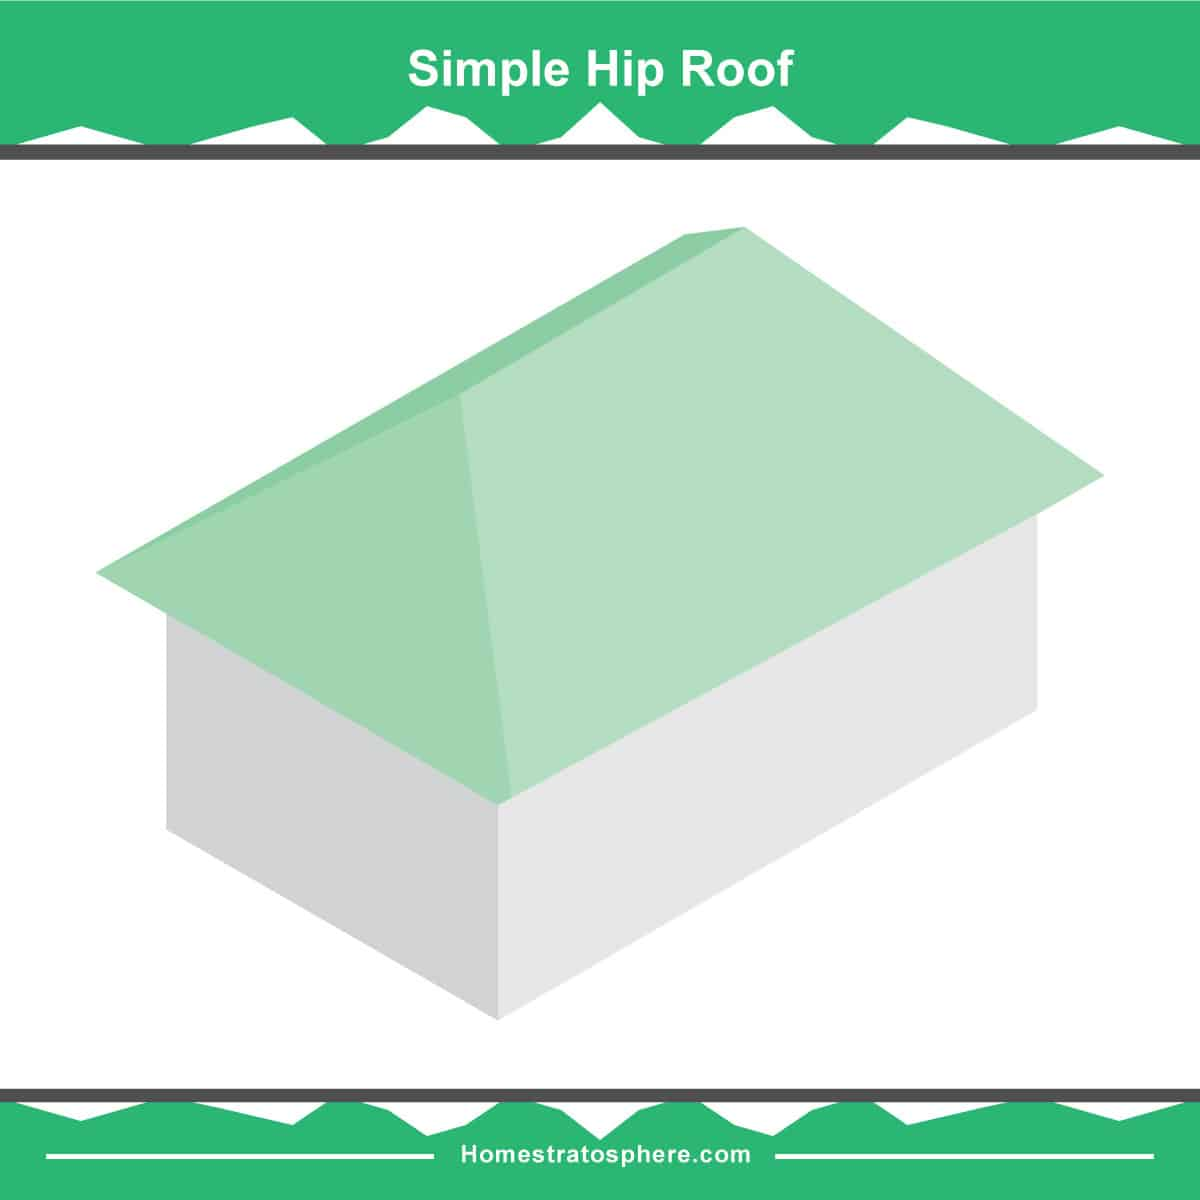 Simple hip roof diagram